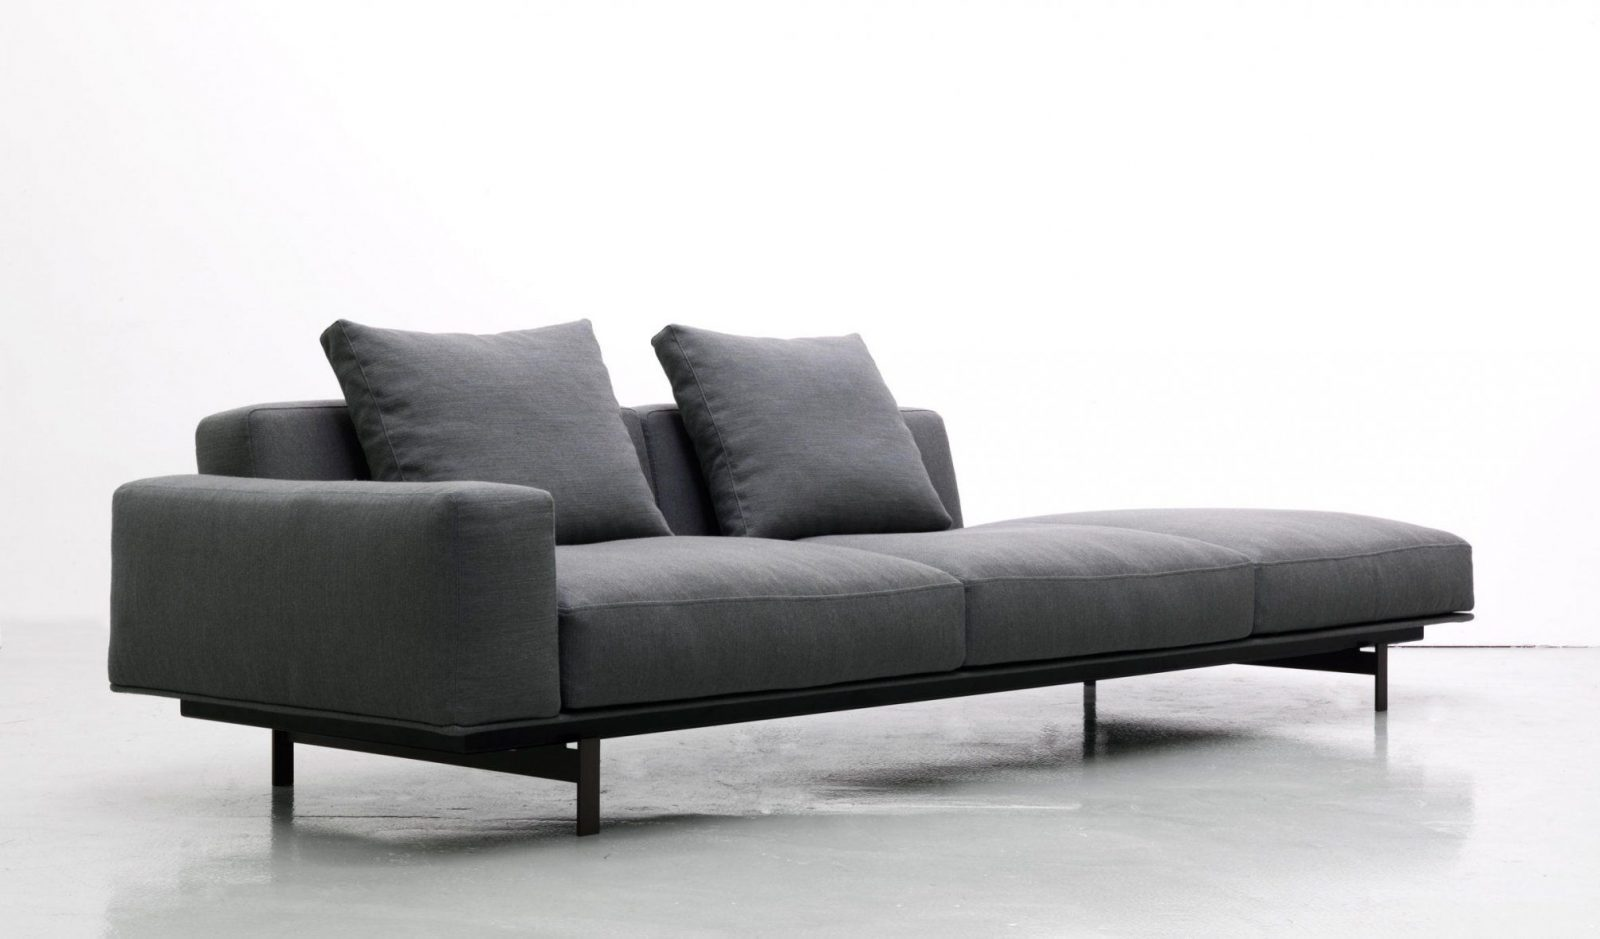 Yard  Lounge Sofas From Lema  Architonic von Seats And Sofas Köln Bild